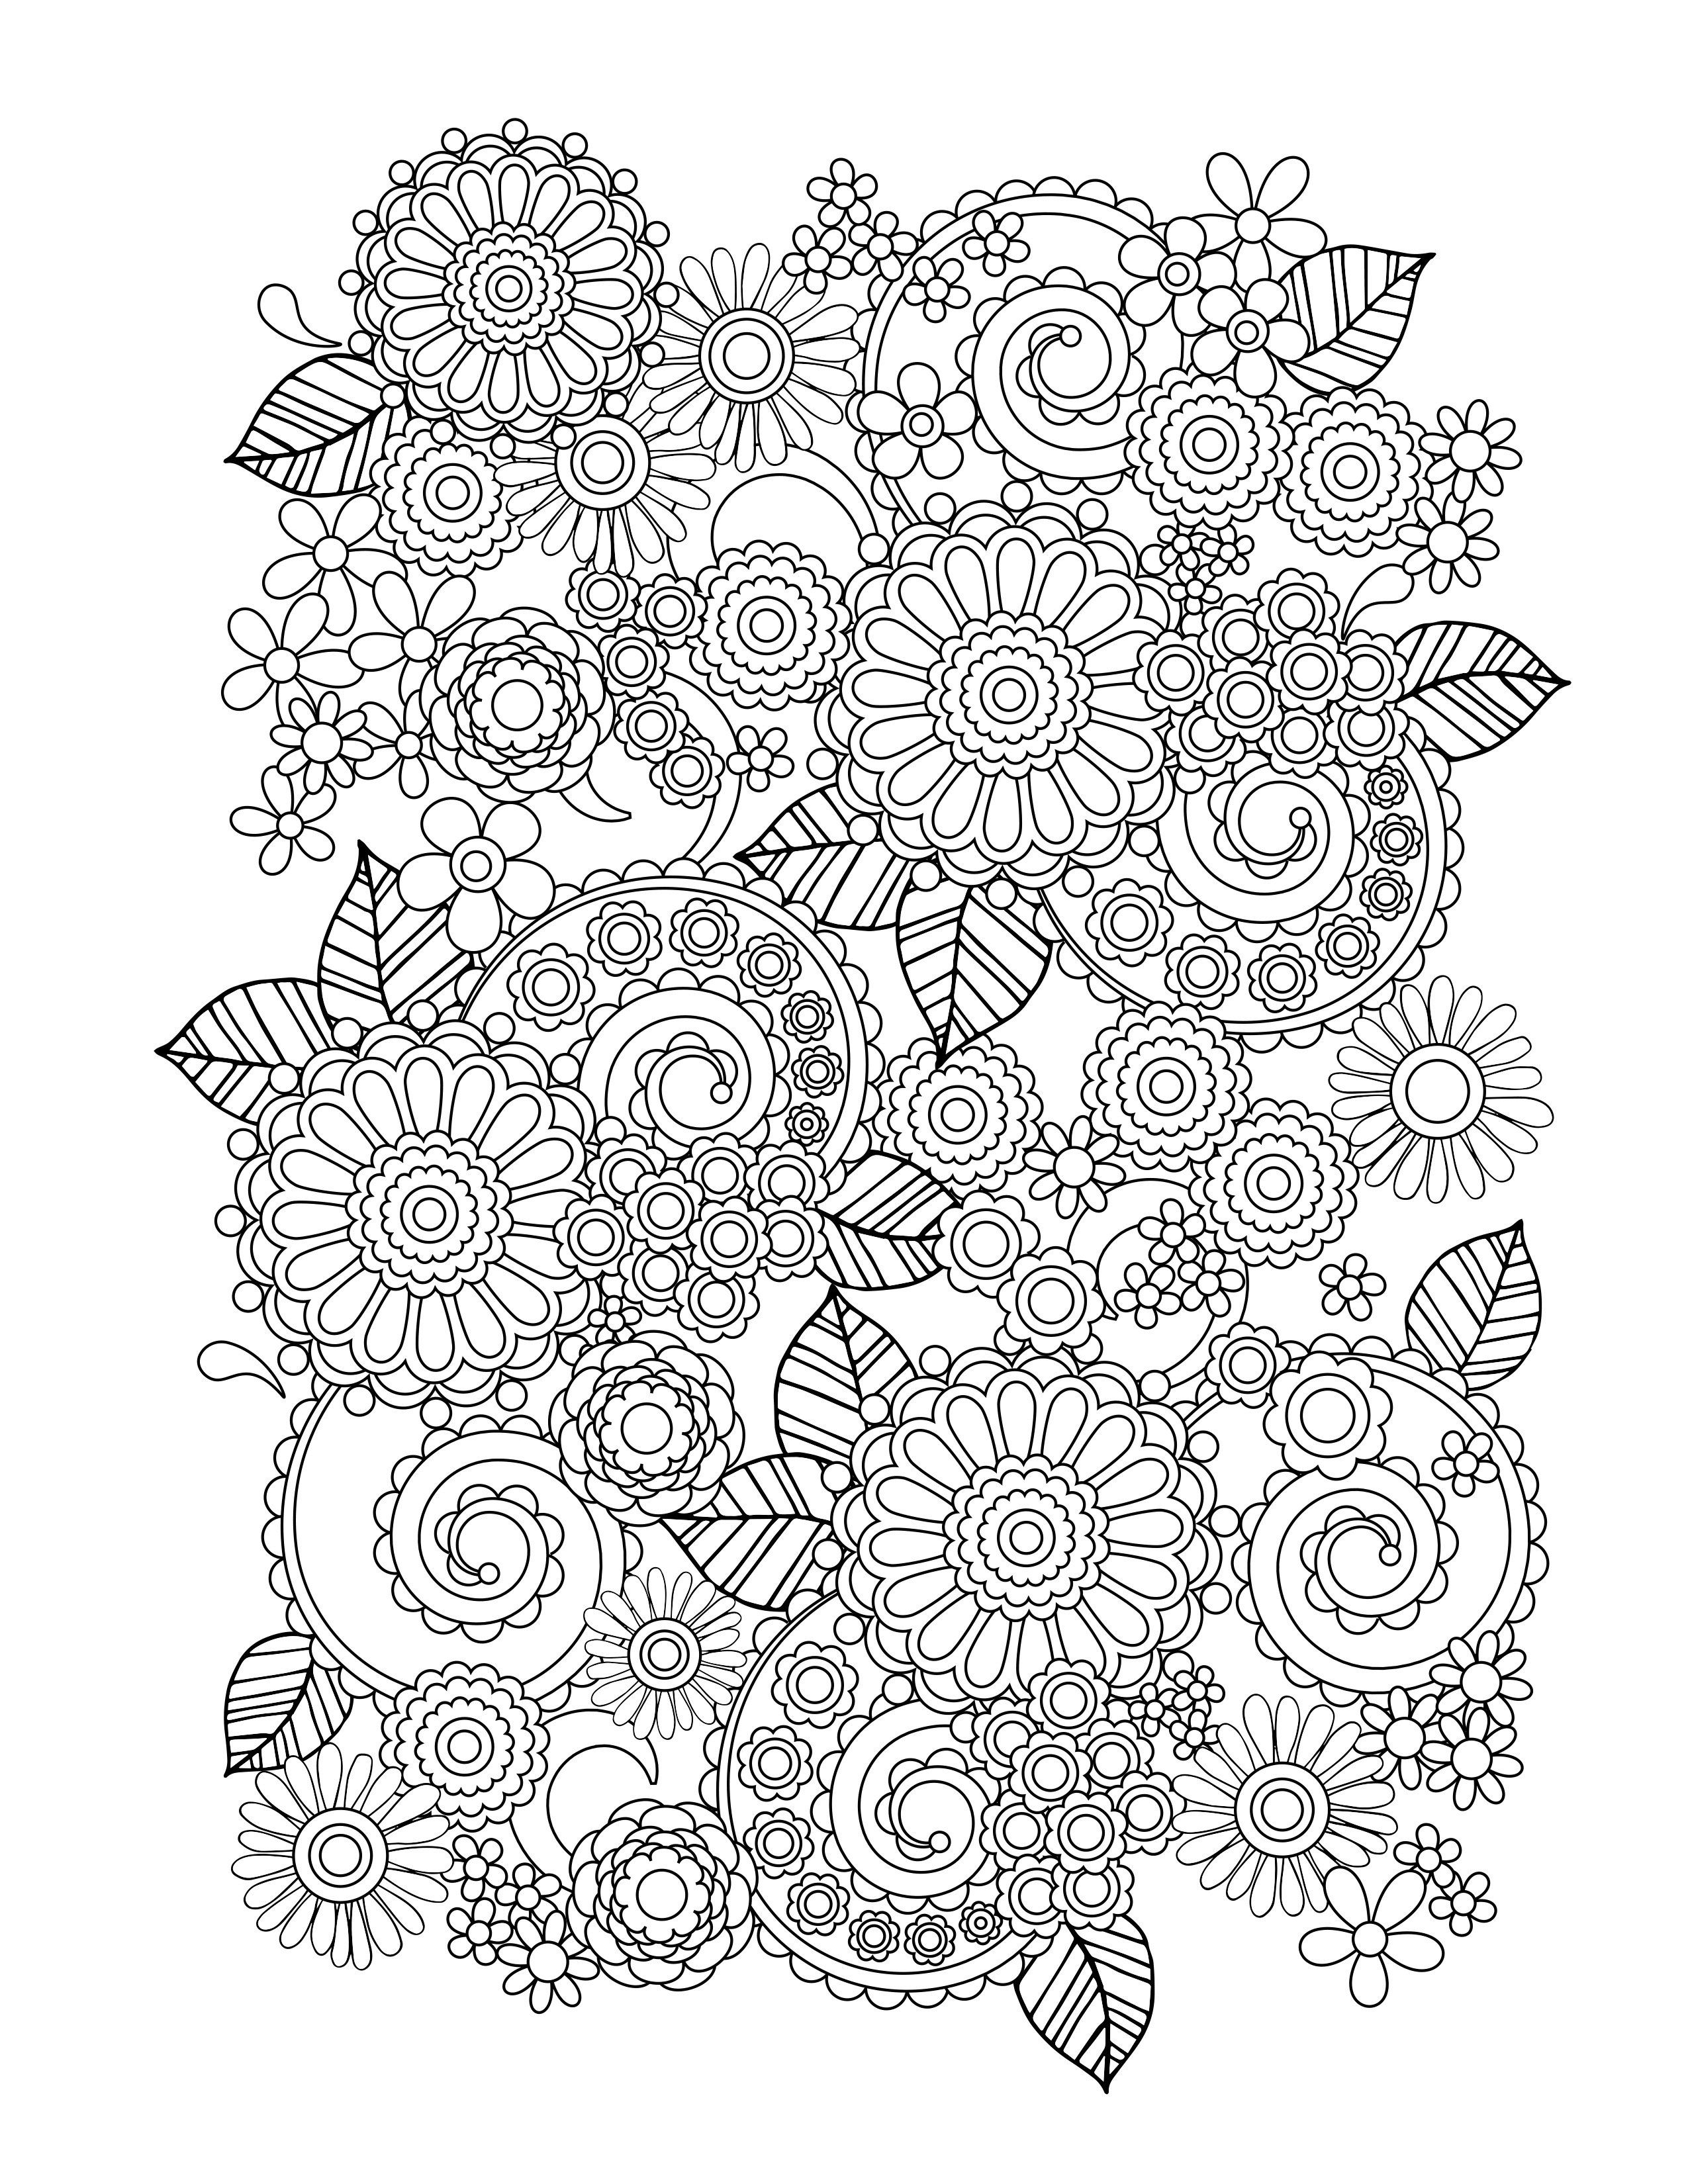 Beyond The Educational Virtues Coloring Sessions Allow Us Adults A Little Peace And Quiet While Boy Or Girl Enjoy